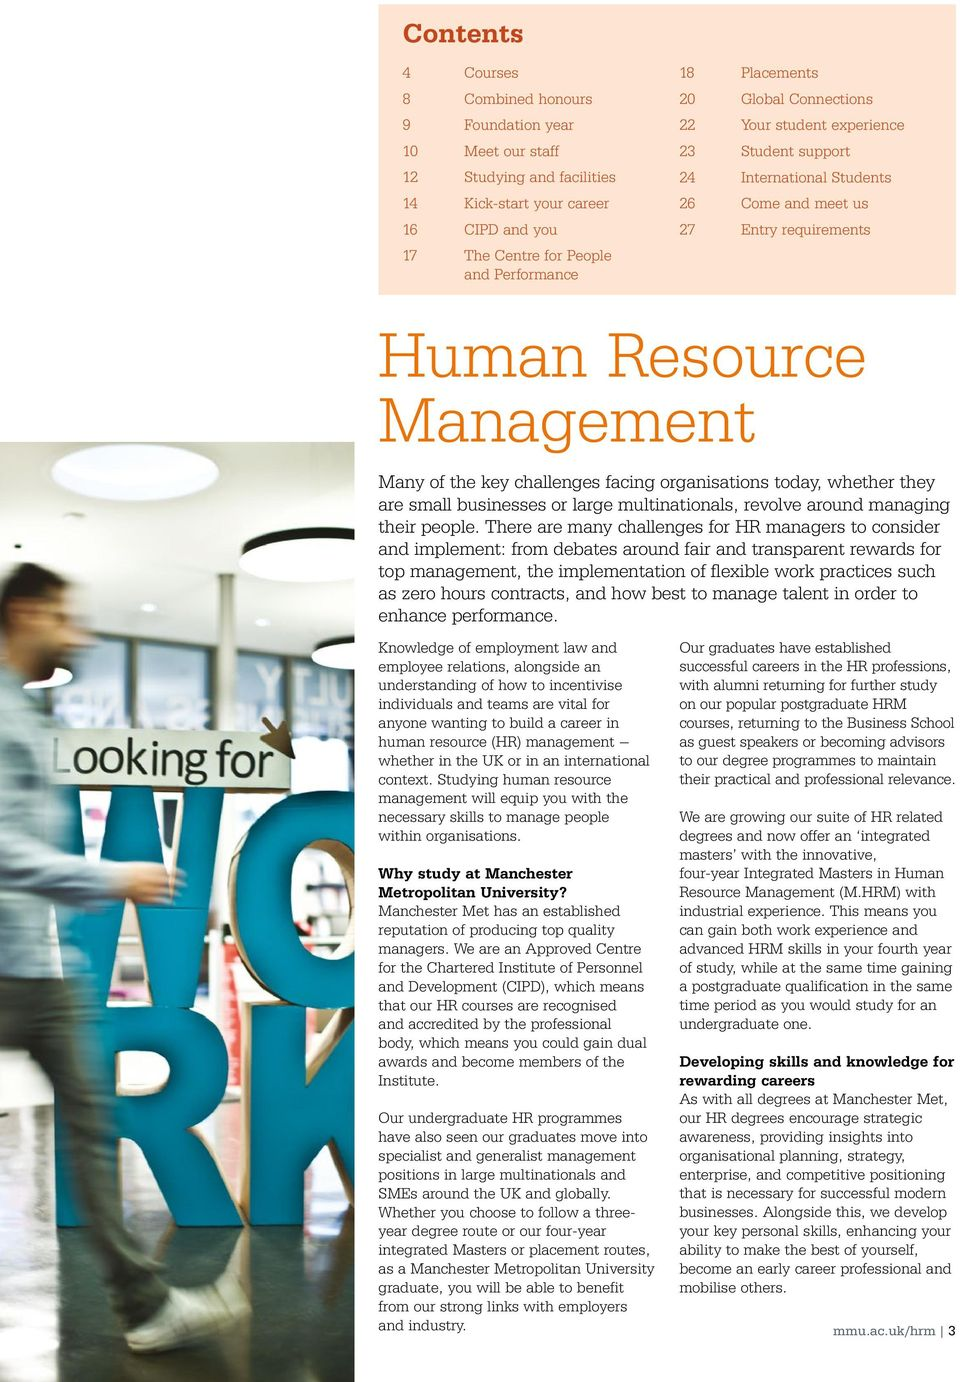 Human Resources statistics experiments not involving human subjects for college stuents